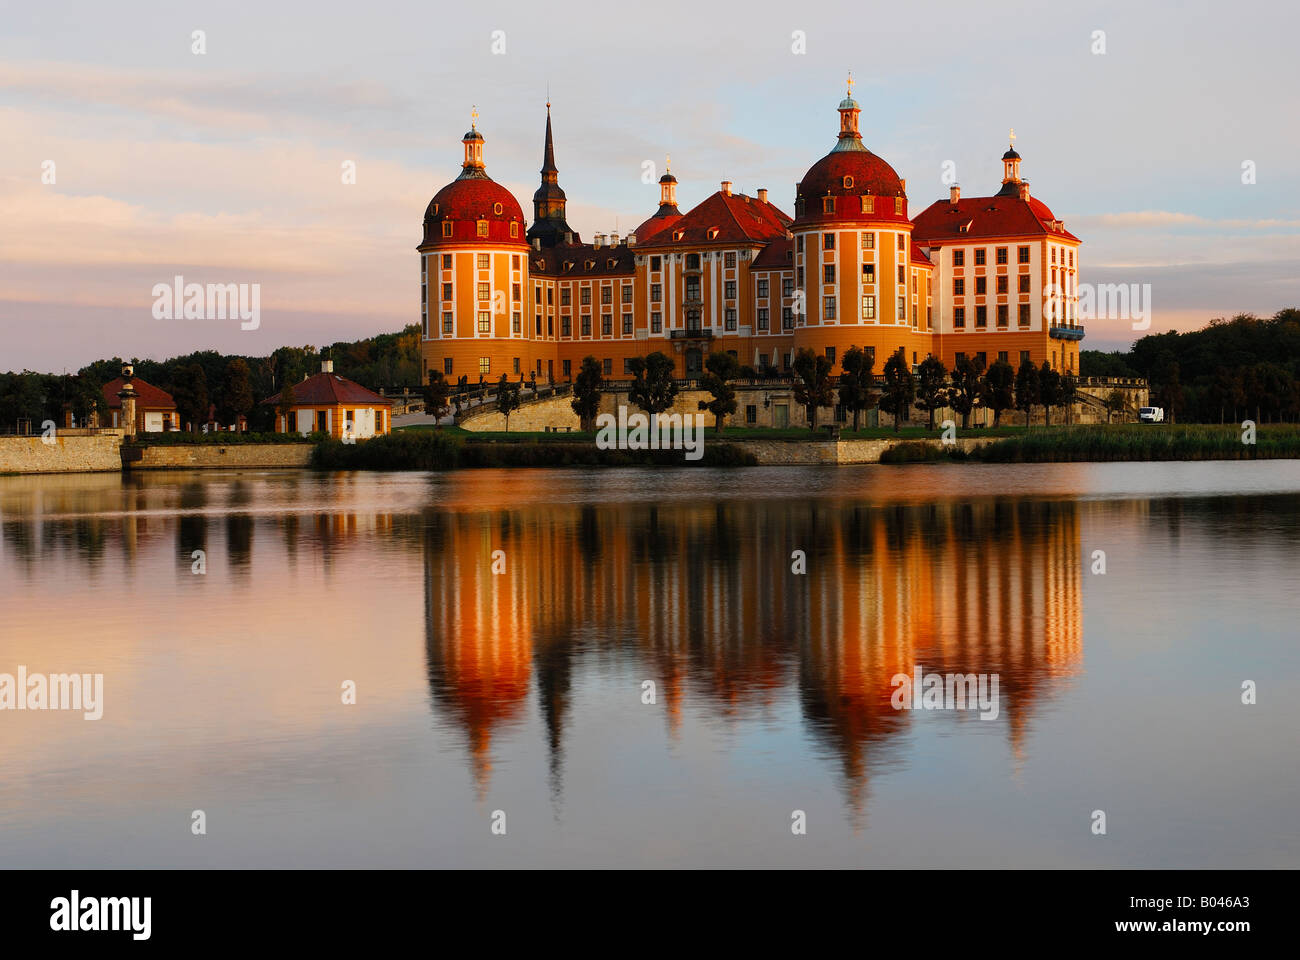 schloss moritzburg nahe dresden sachsen brd oktober 2006 stock photo royalty free image. Black Bedroom Furniture Sets. Home Design Ideas